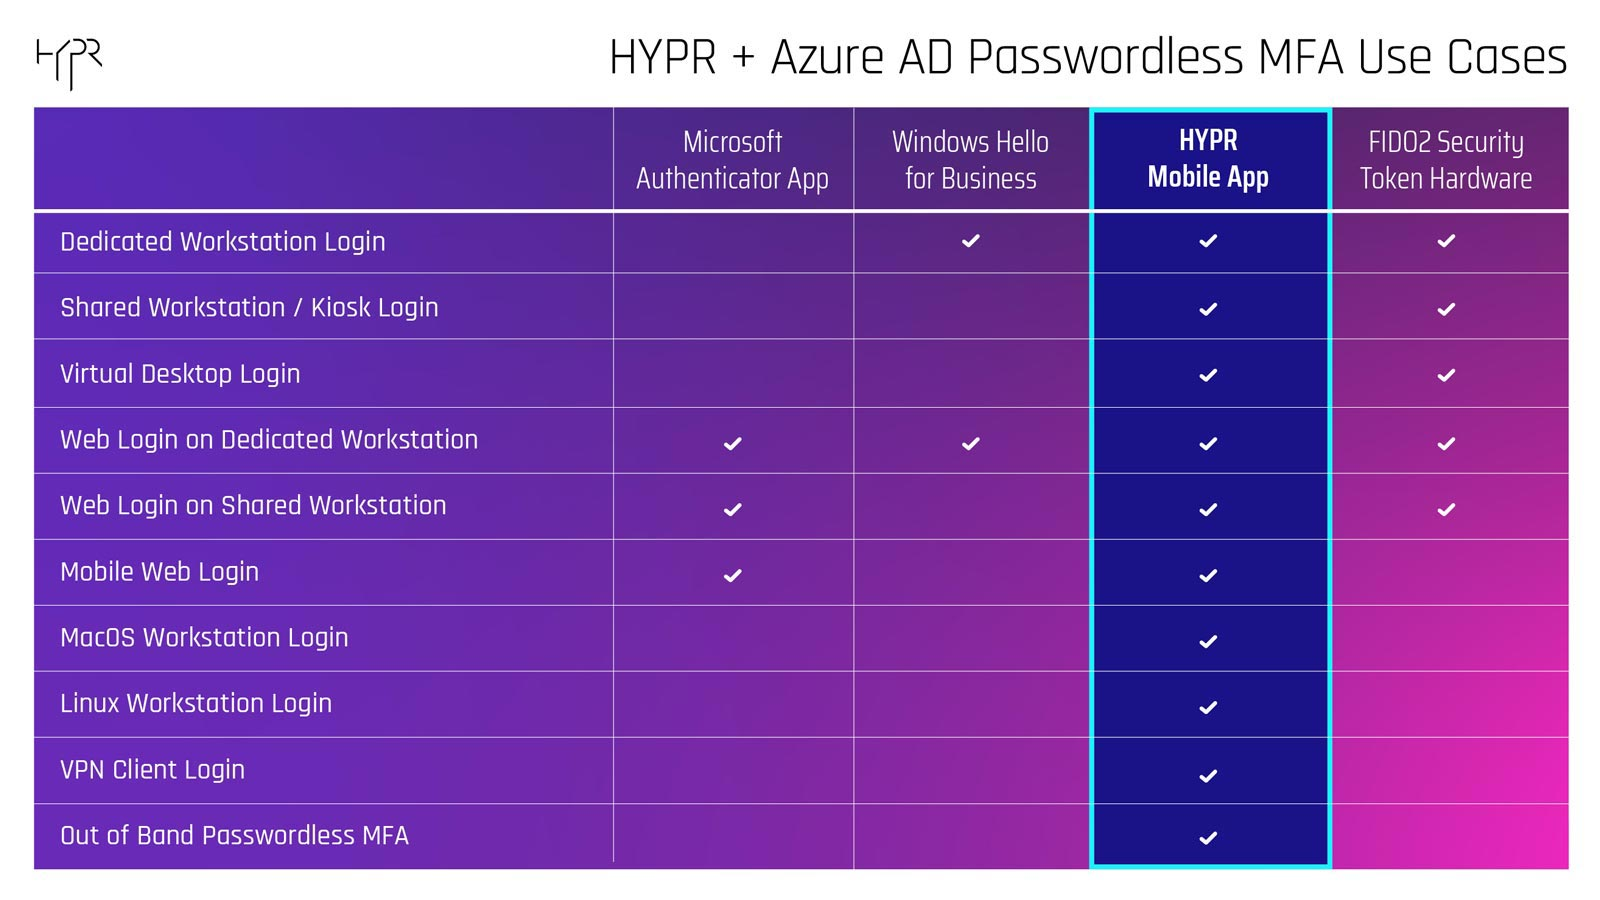 HYPR Azure AD Passwordless MFA Use Cases